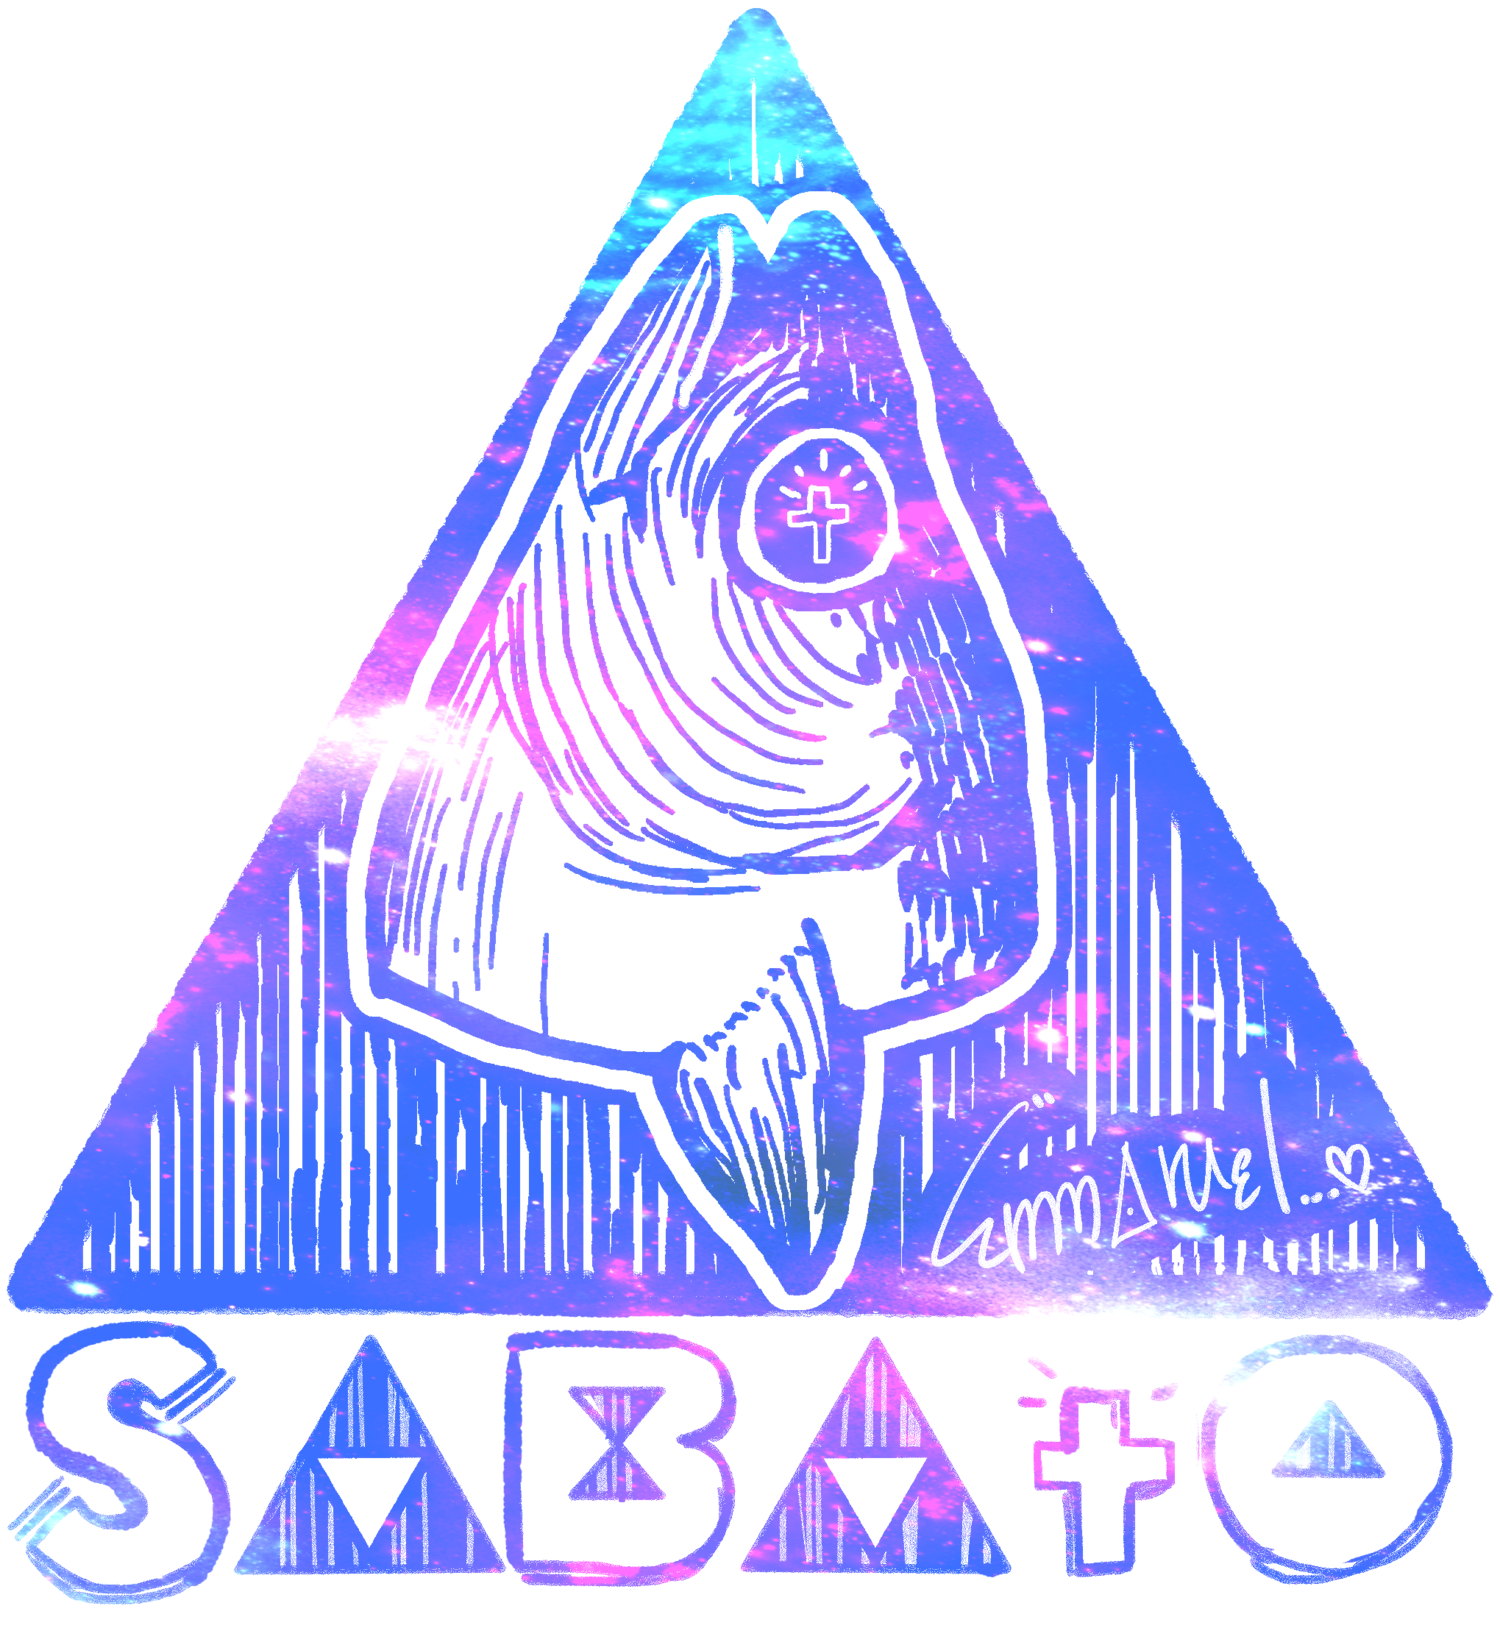 S▲B▲tO